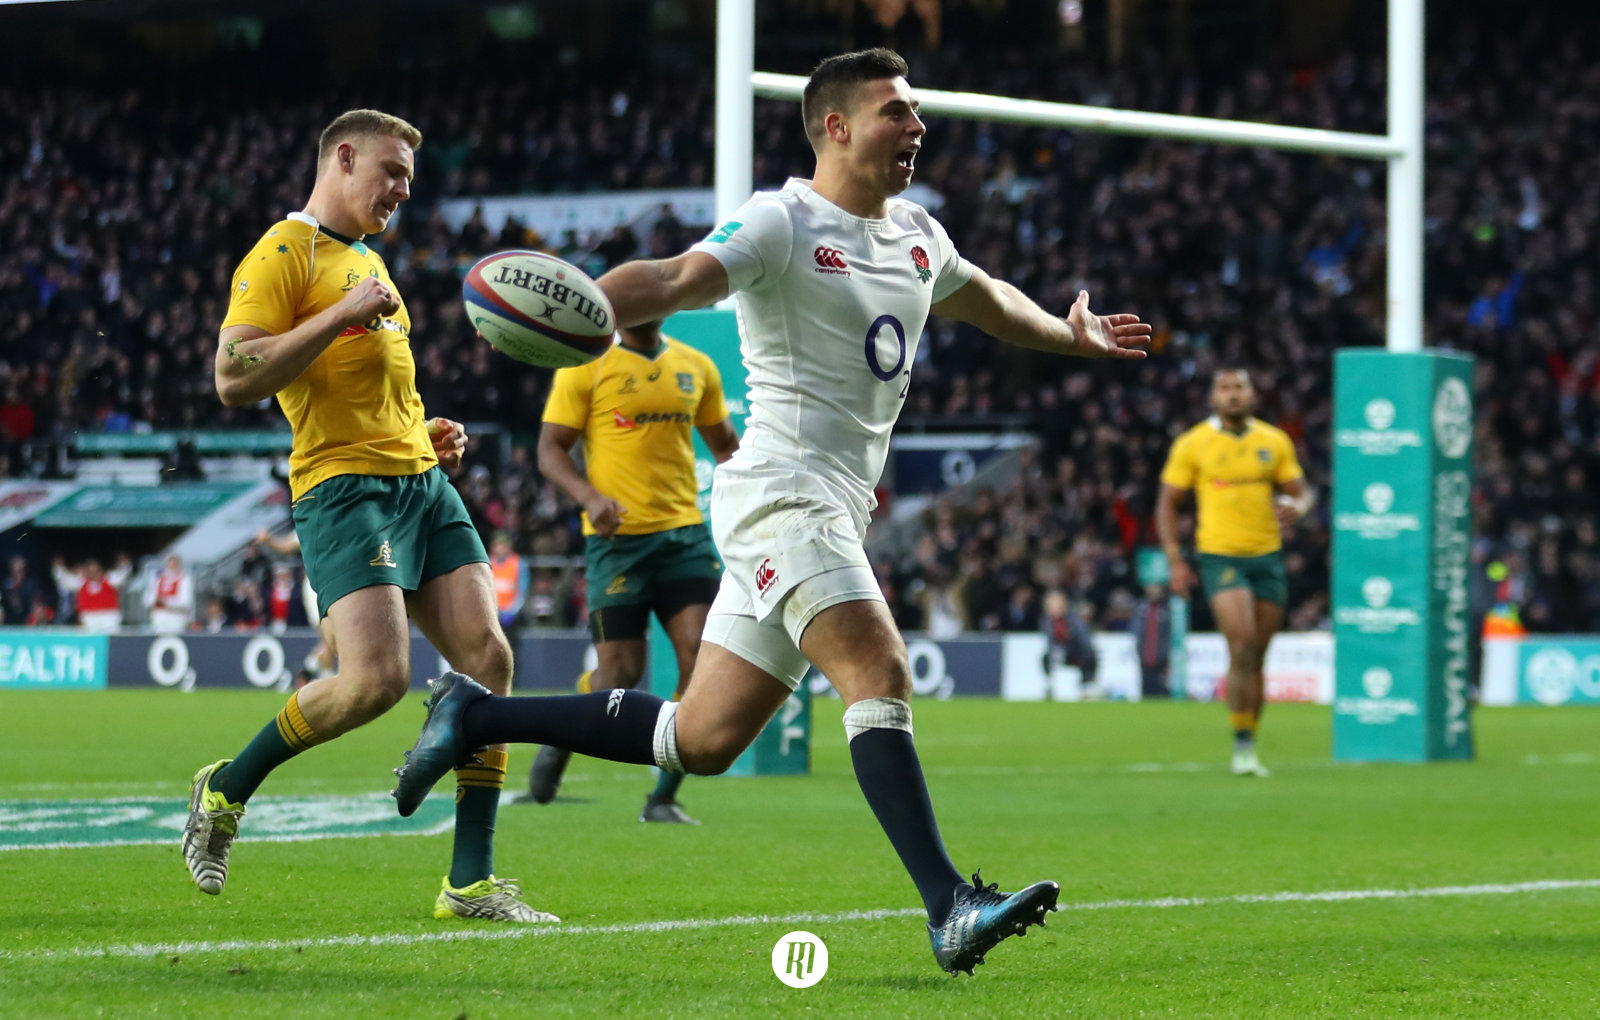 England vs Australia quarter-final: Kicking games, powerful wingers and dual opensides